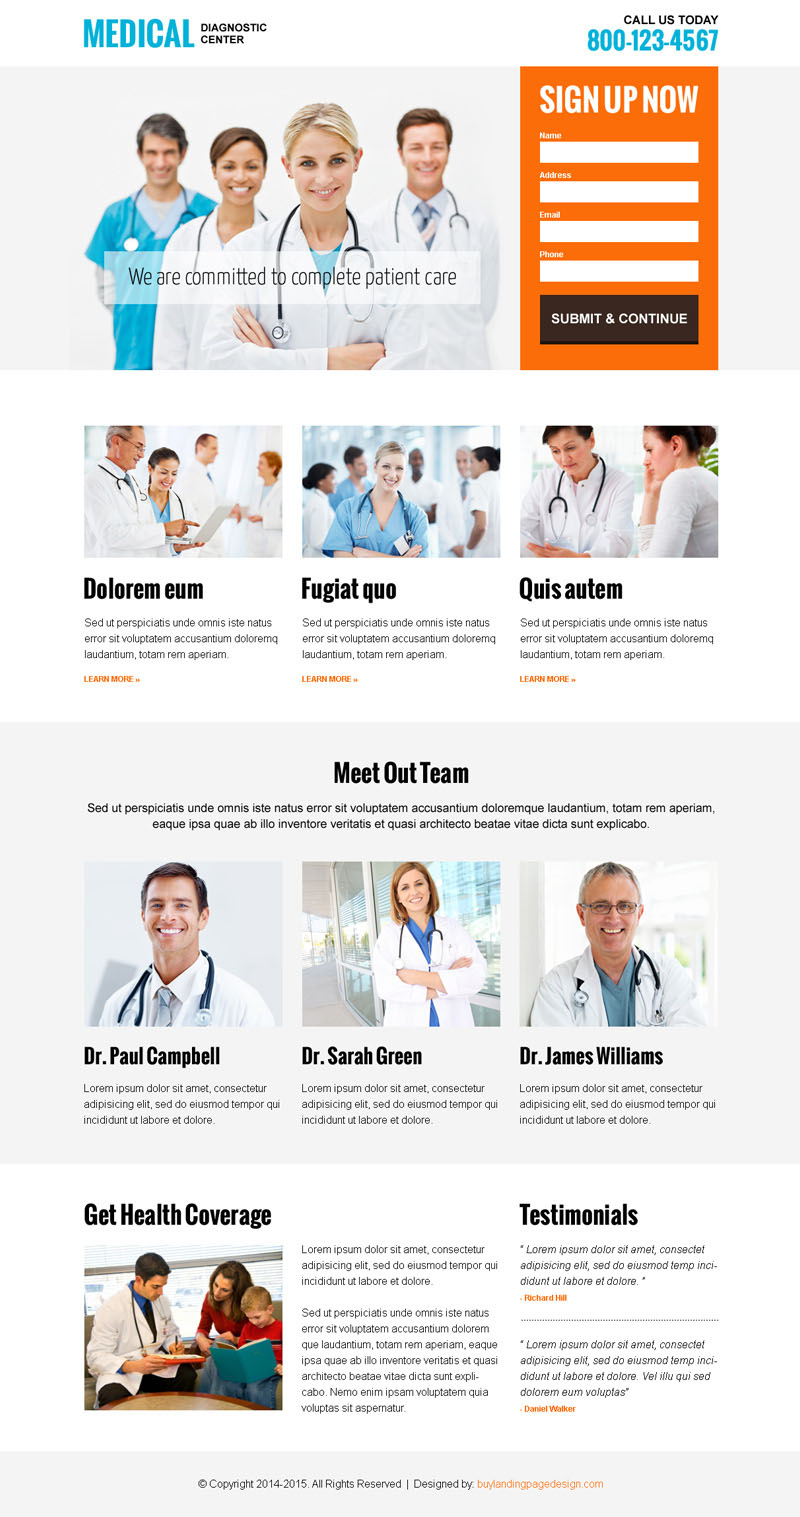 medical-diagnostic-center-lead-capture-landing-page-design-template-to-increase-leads-for-your-medical-business-017